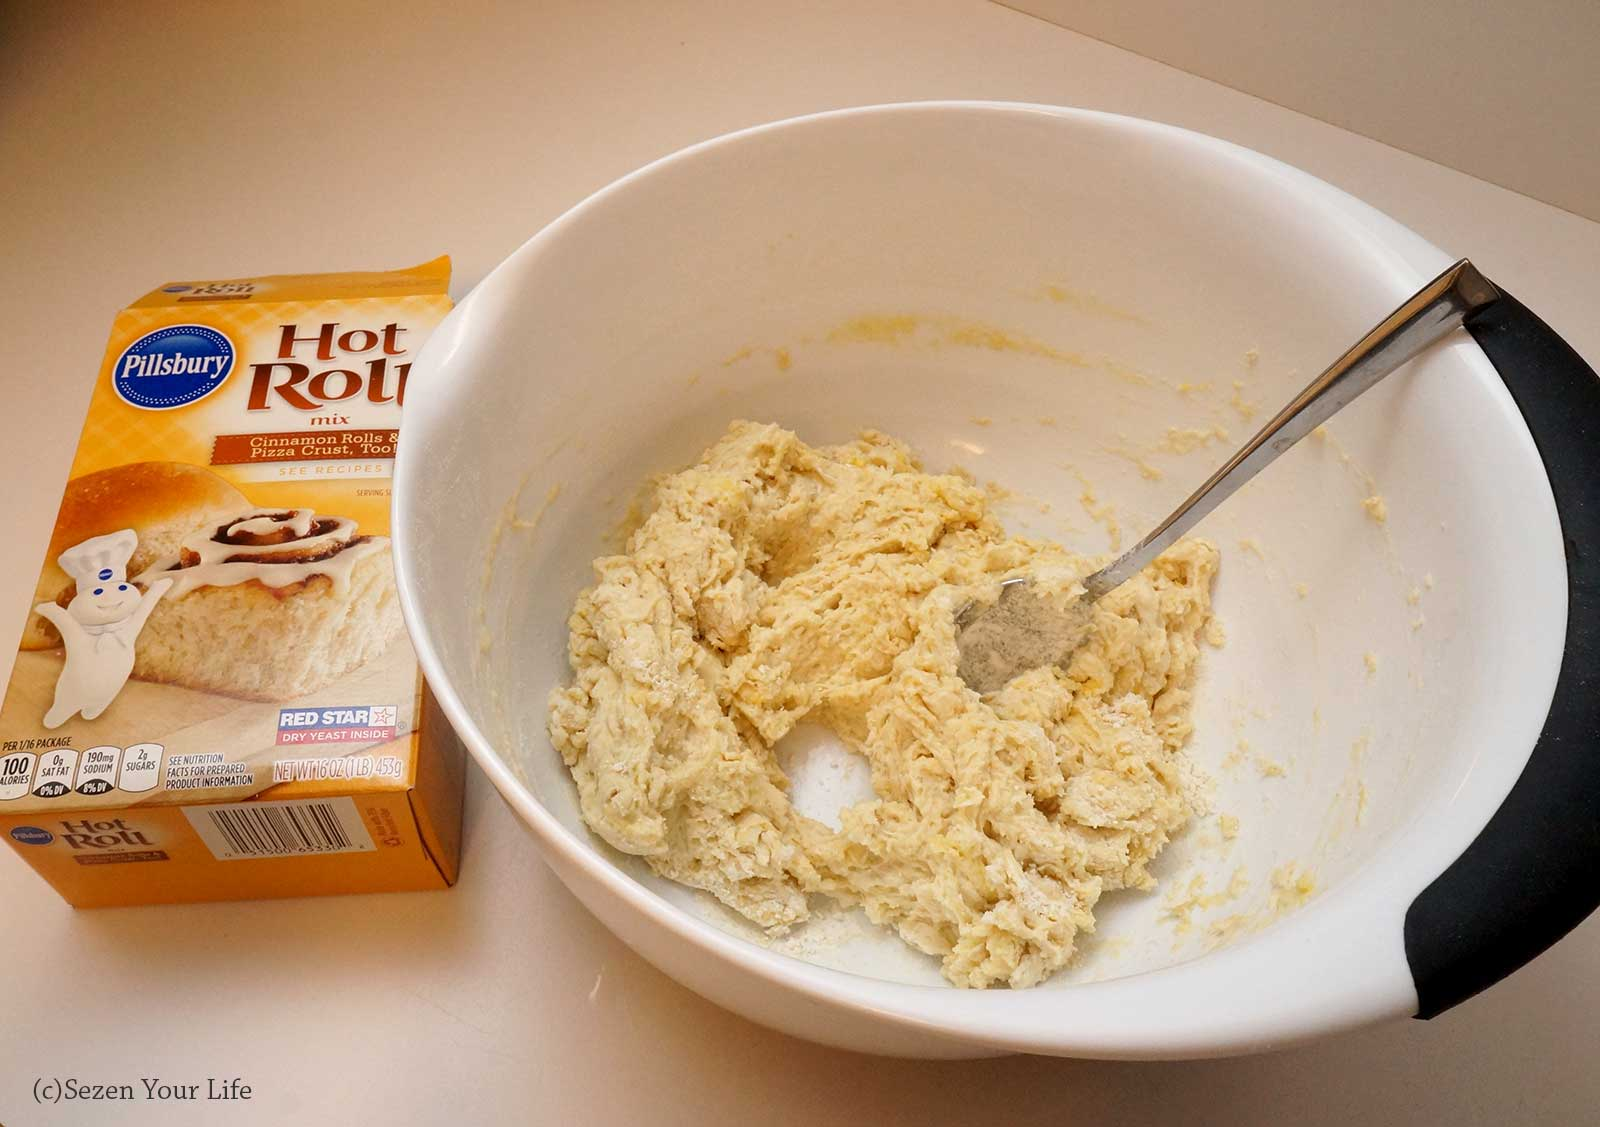 Pillsbury Hot Roll Mix by Sarah Franzen